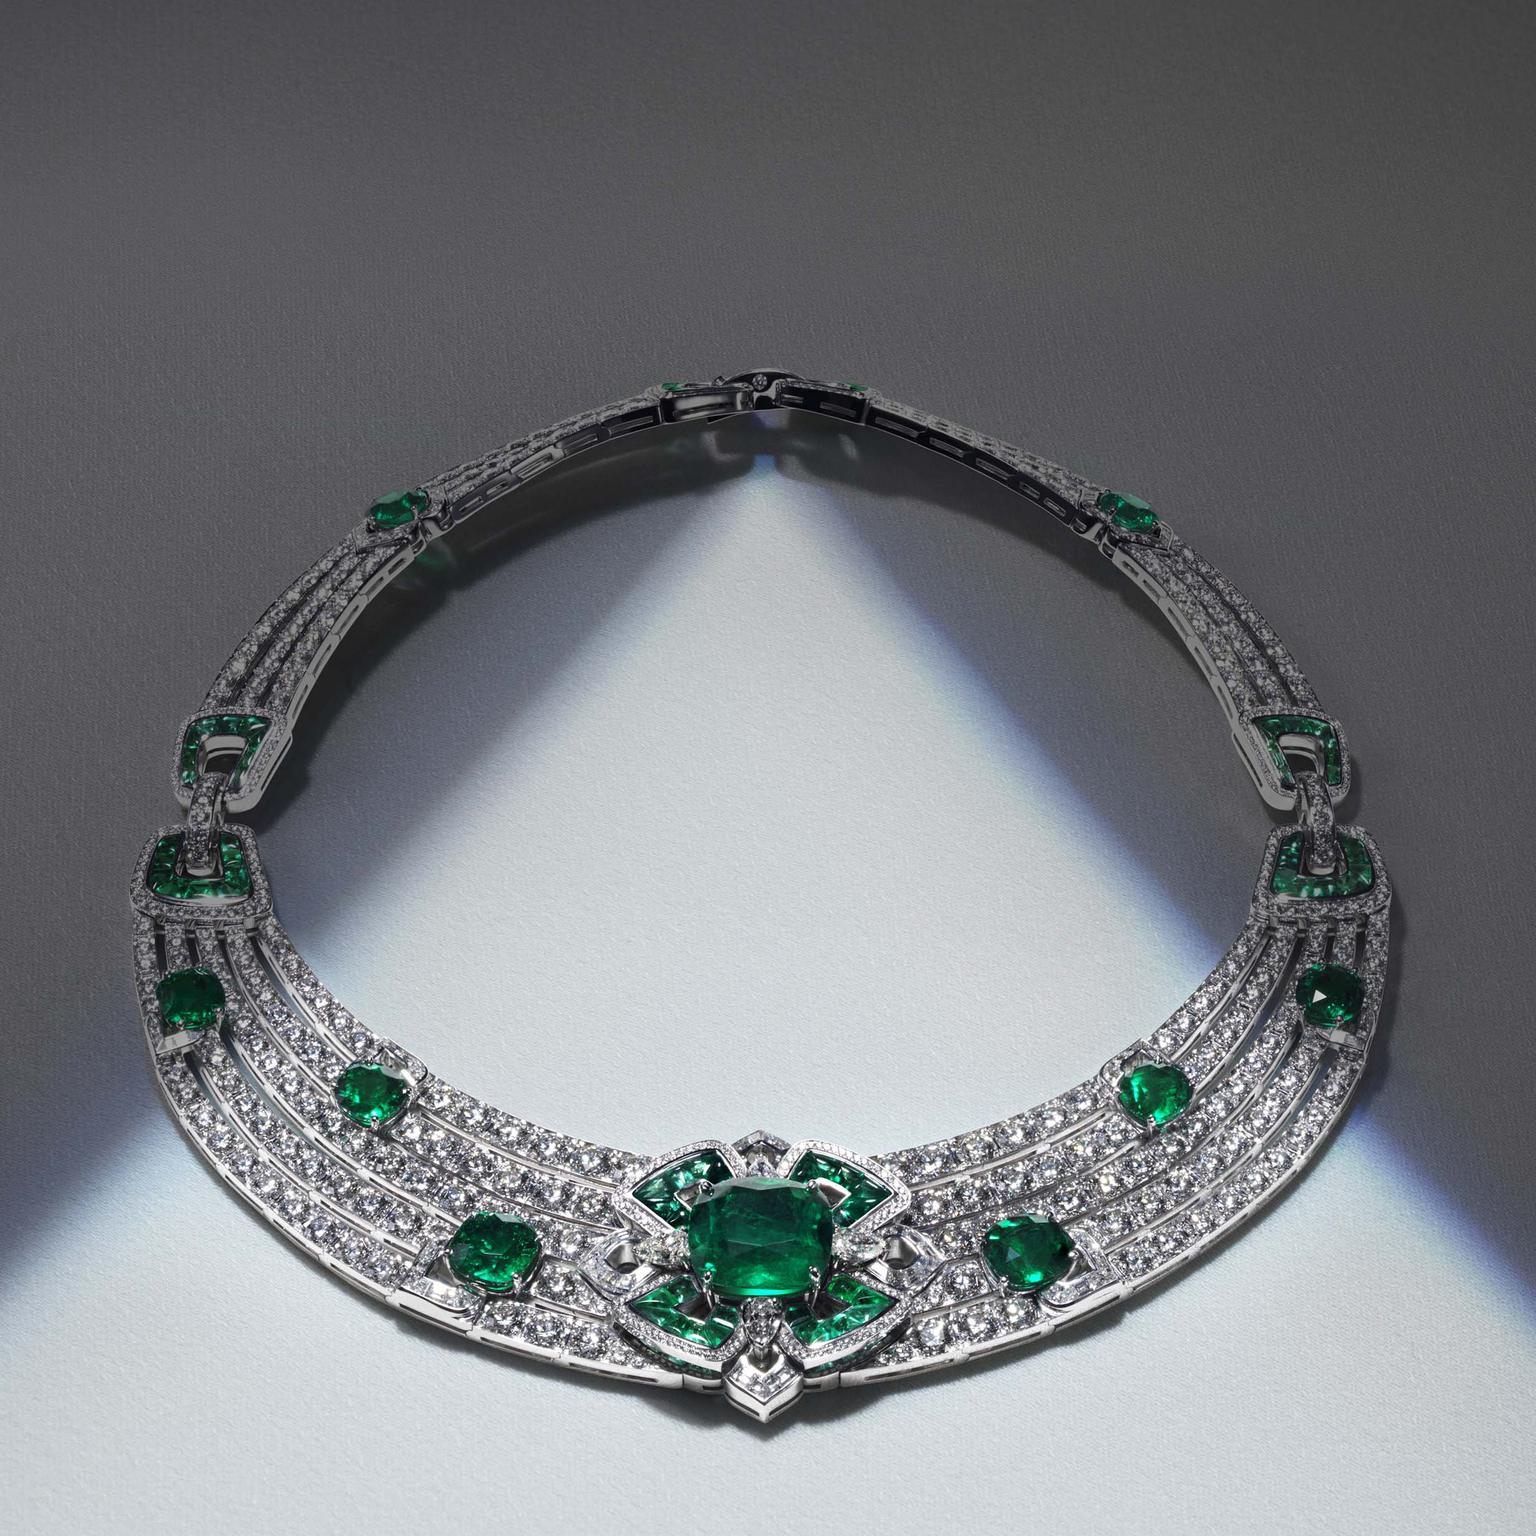 High jewellery chokers speak to strong women